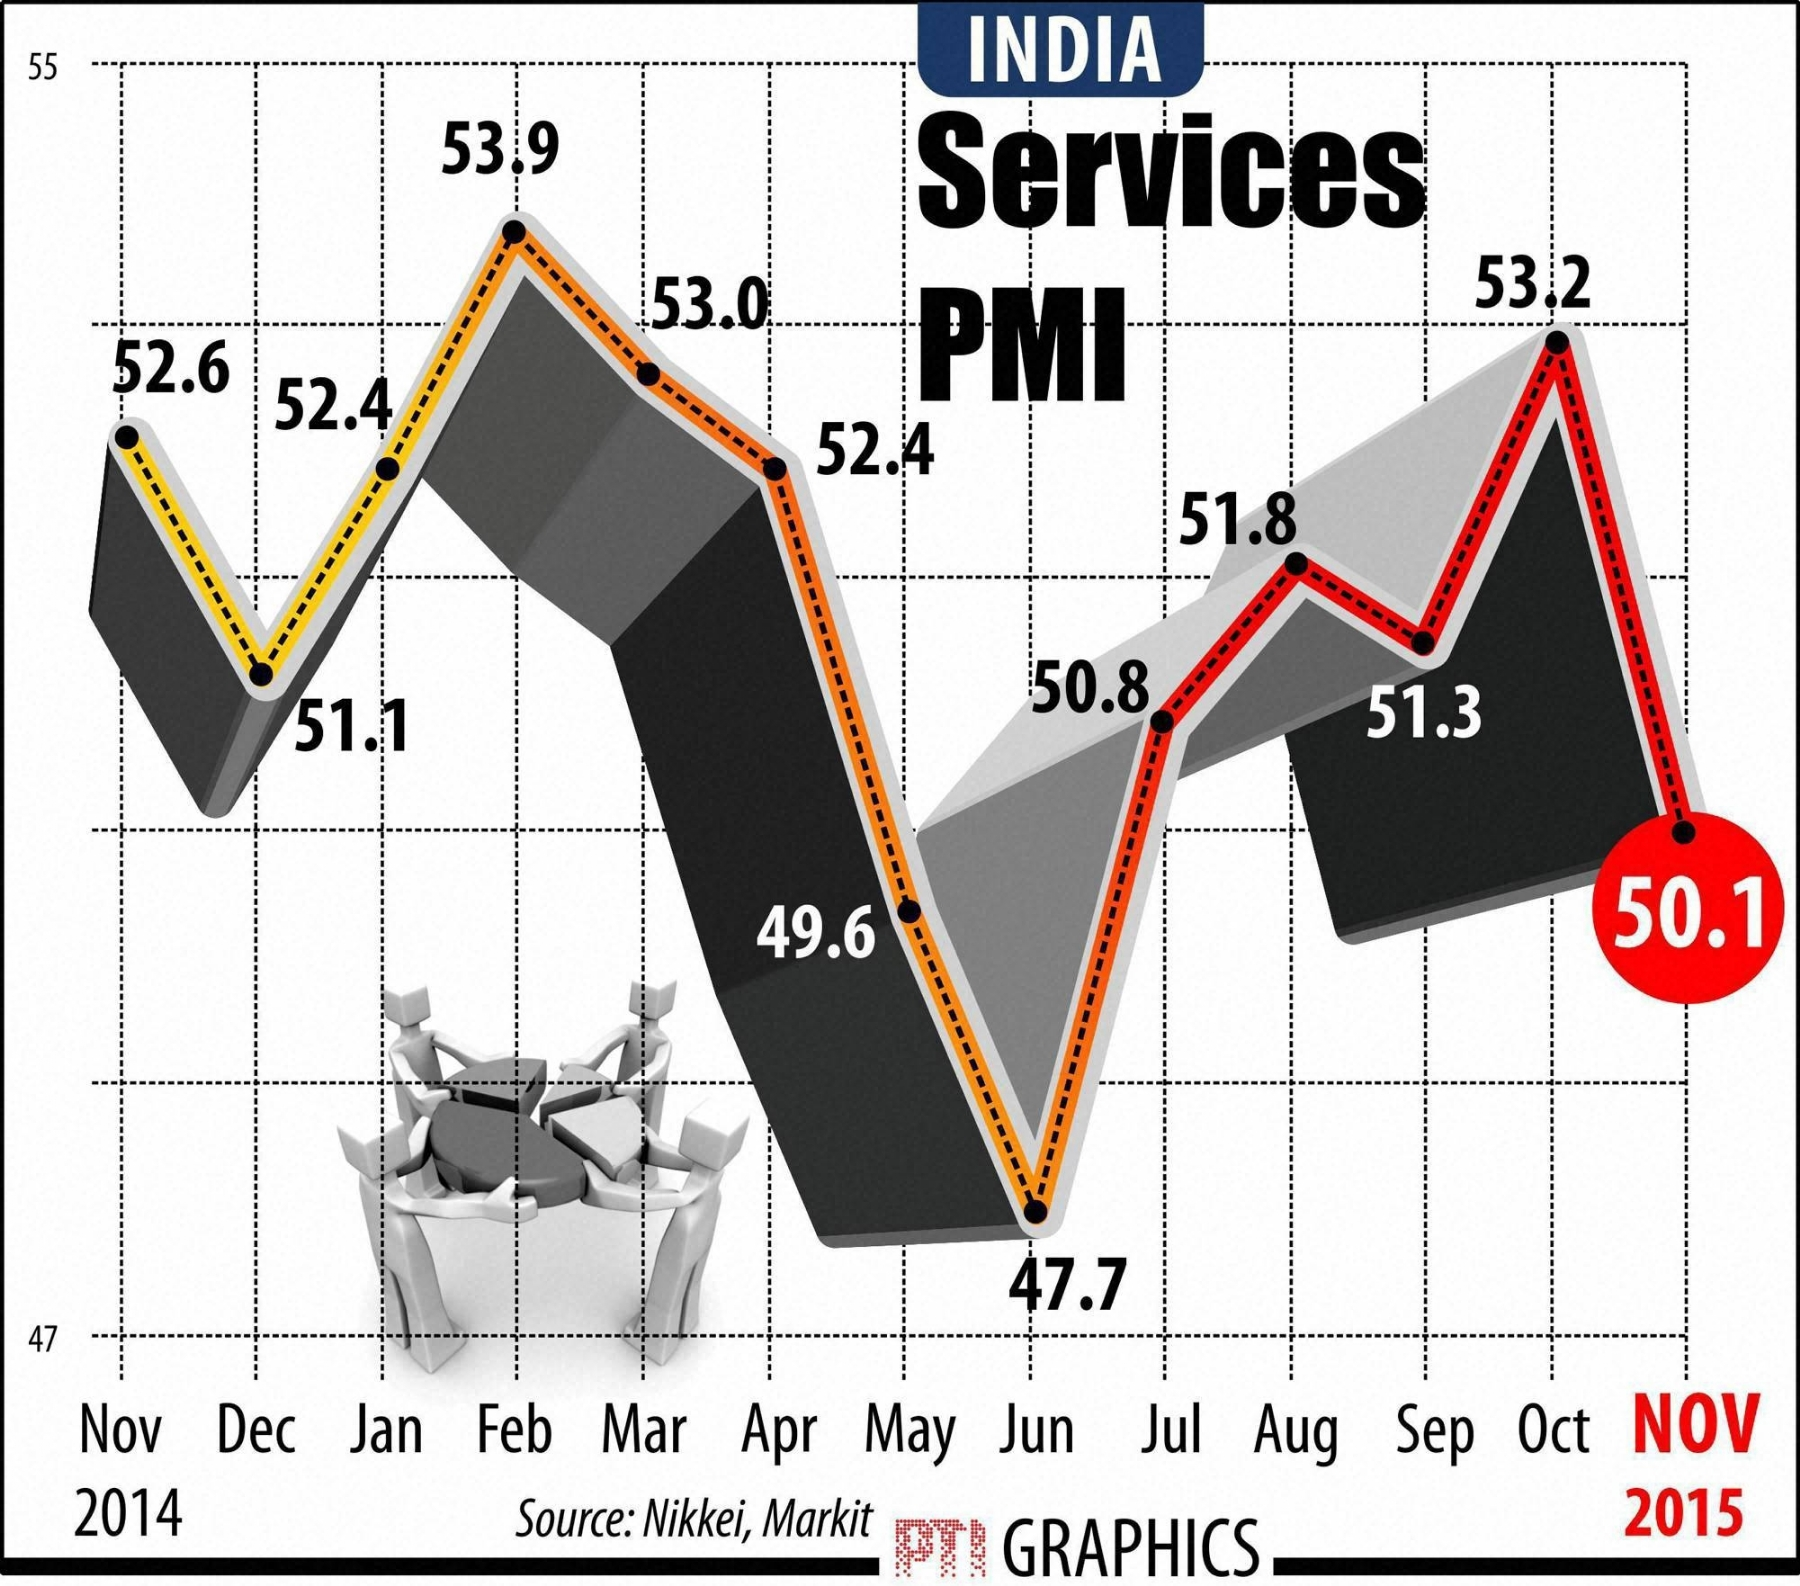 Services sector stagnates in Nov as biz sentiments hit 10-year low